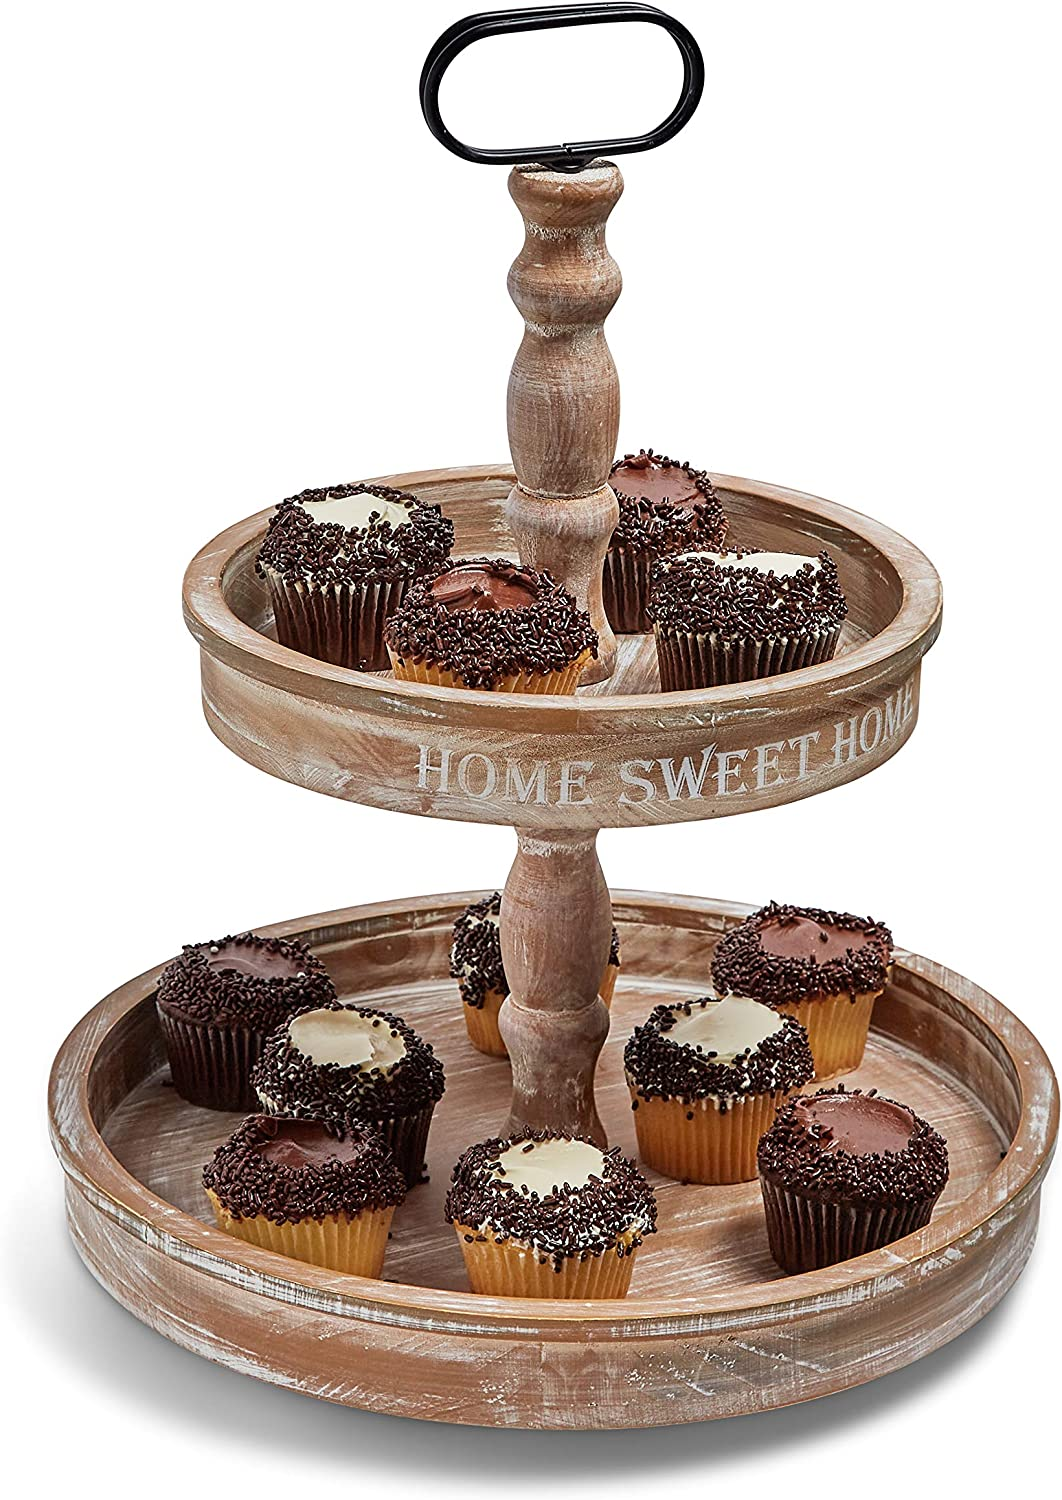 Sweet Home - Two Tier Serving Tray - Farmhouse Kitchen Display - Cupcake Stand - Rustic Wood - Sweet Printed Phrase - Fruit Basket - Coffee Table Decor - Creative Centerpieces - Round 2 Tier